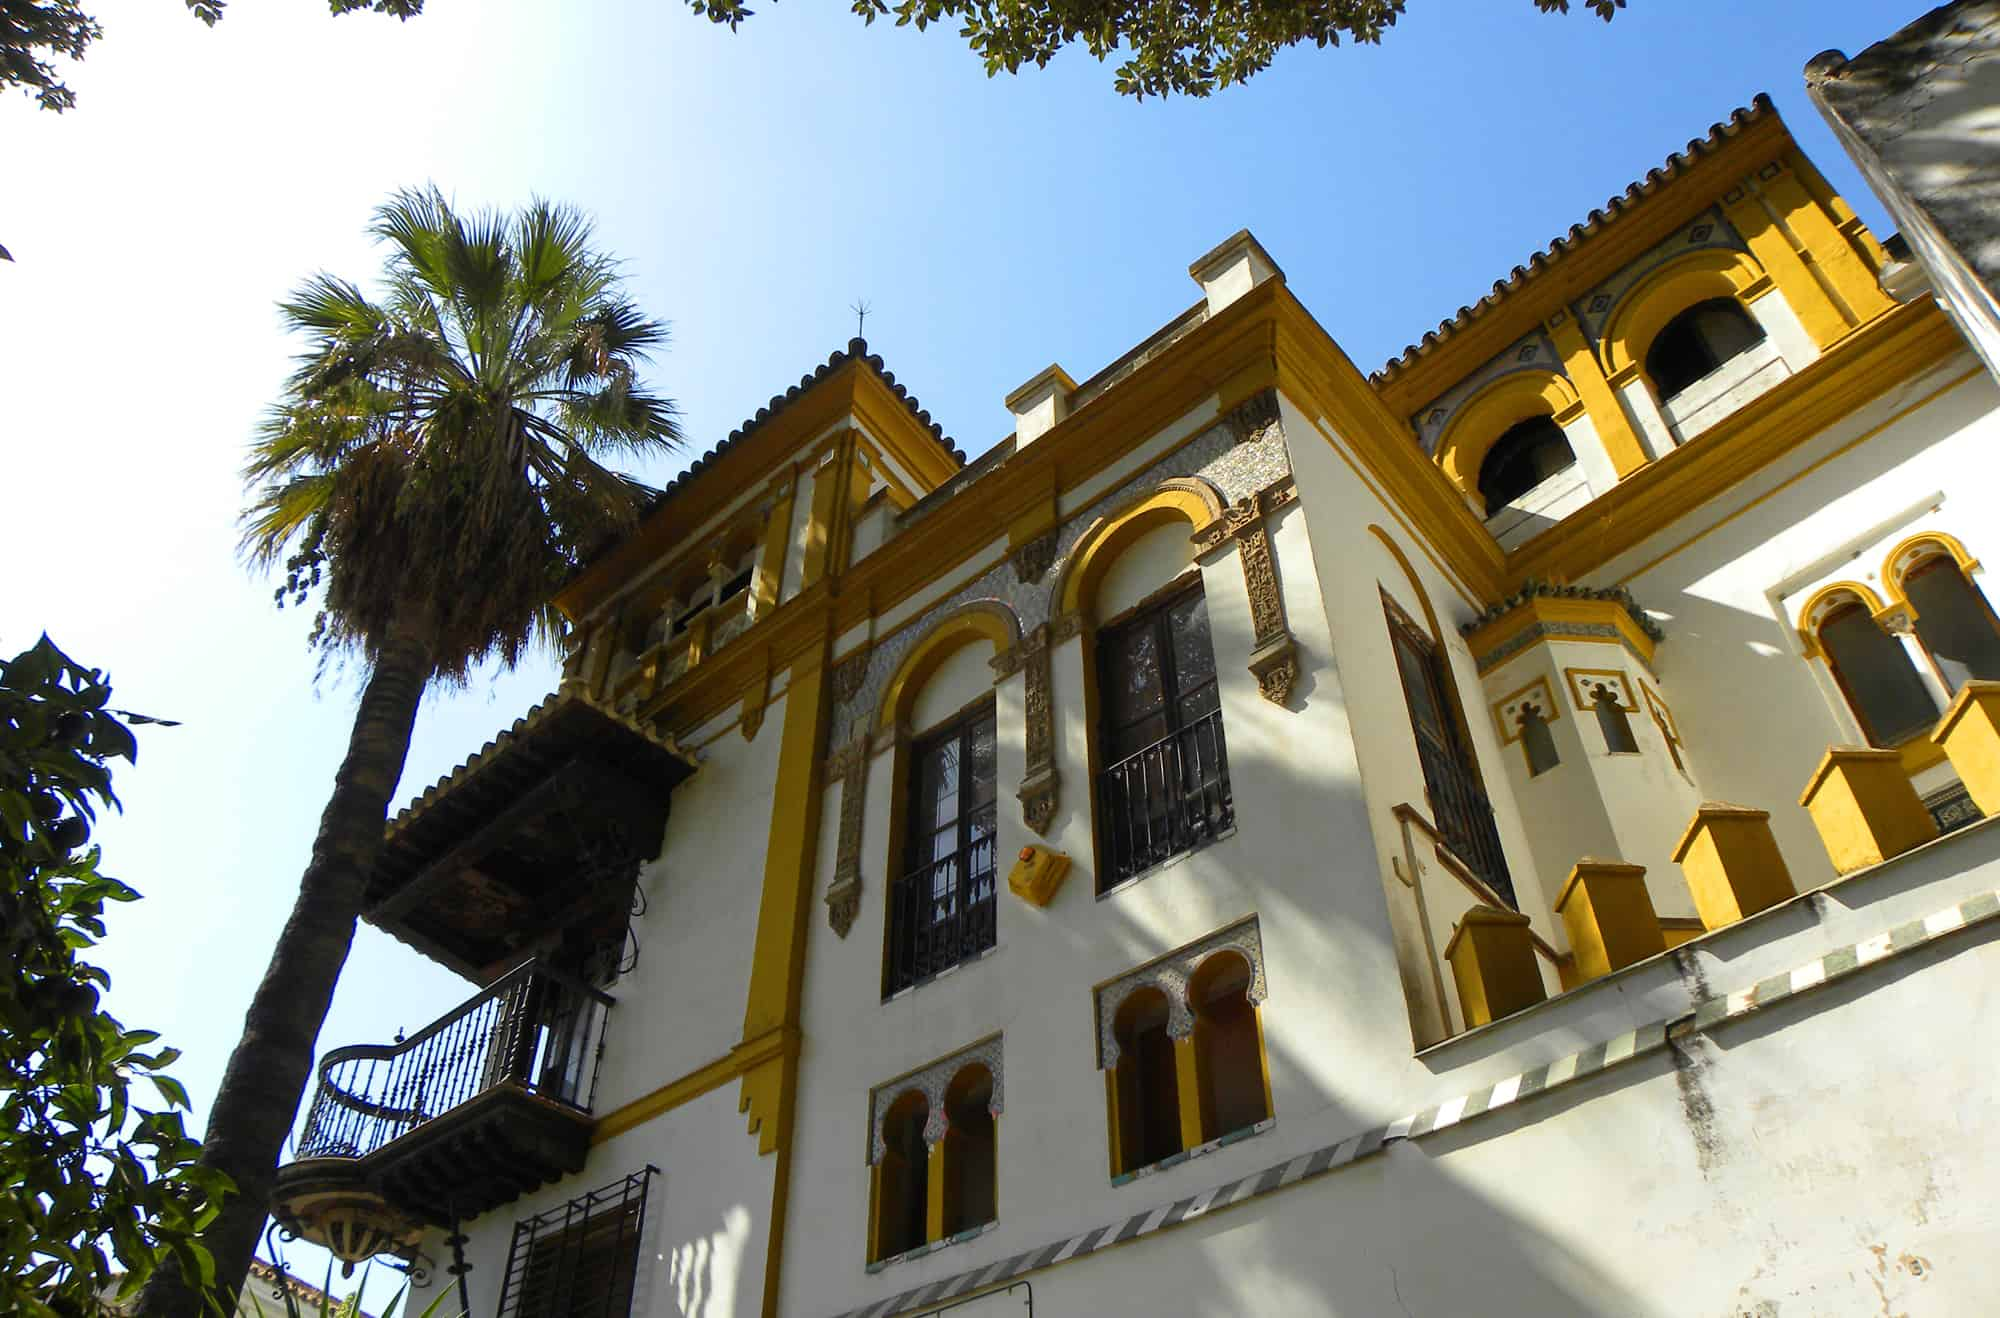 What is Seville (Spain) like?